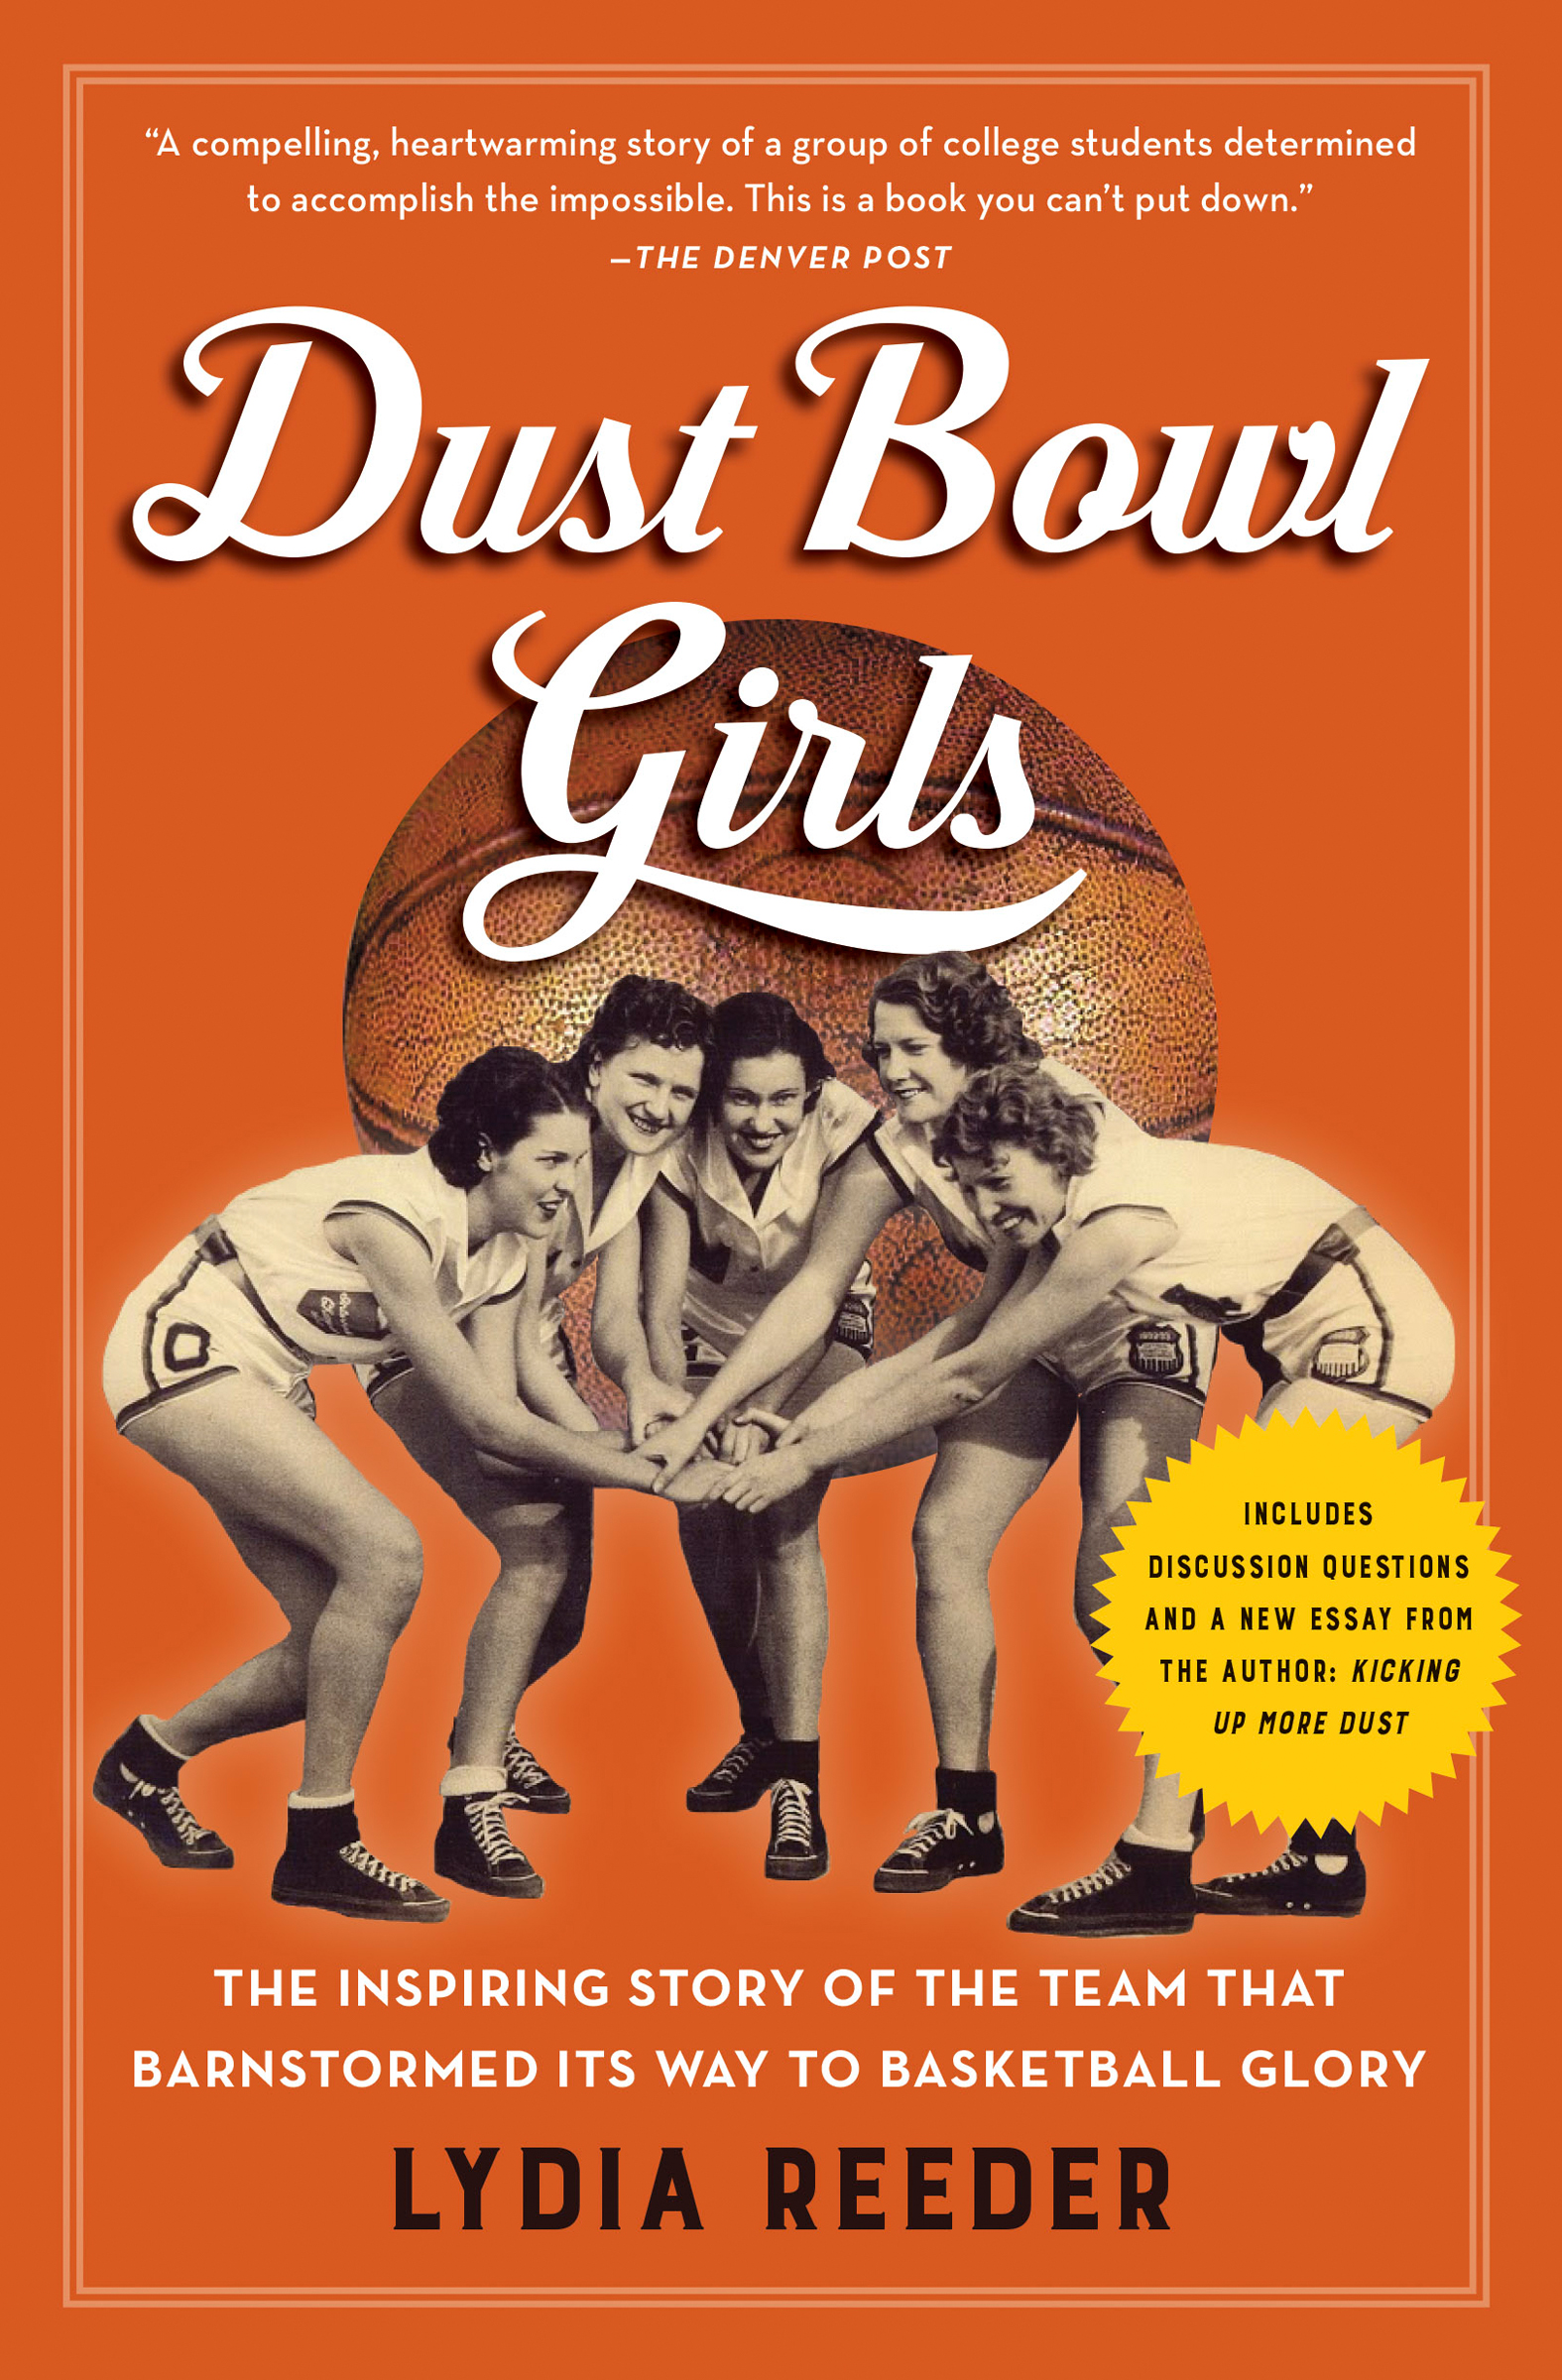 Dust Bowl Girls The Inspiring Story of the Team That Barnstormed Its Way to Basketball Glory